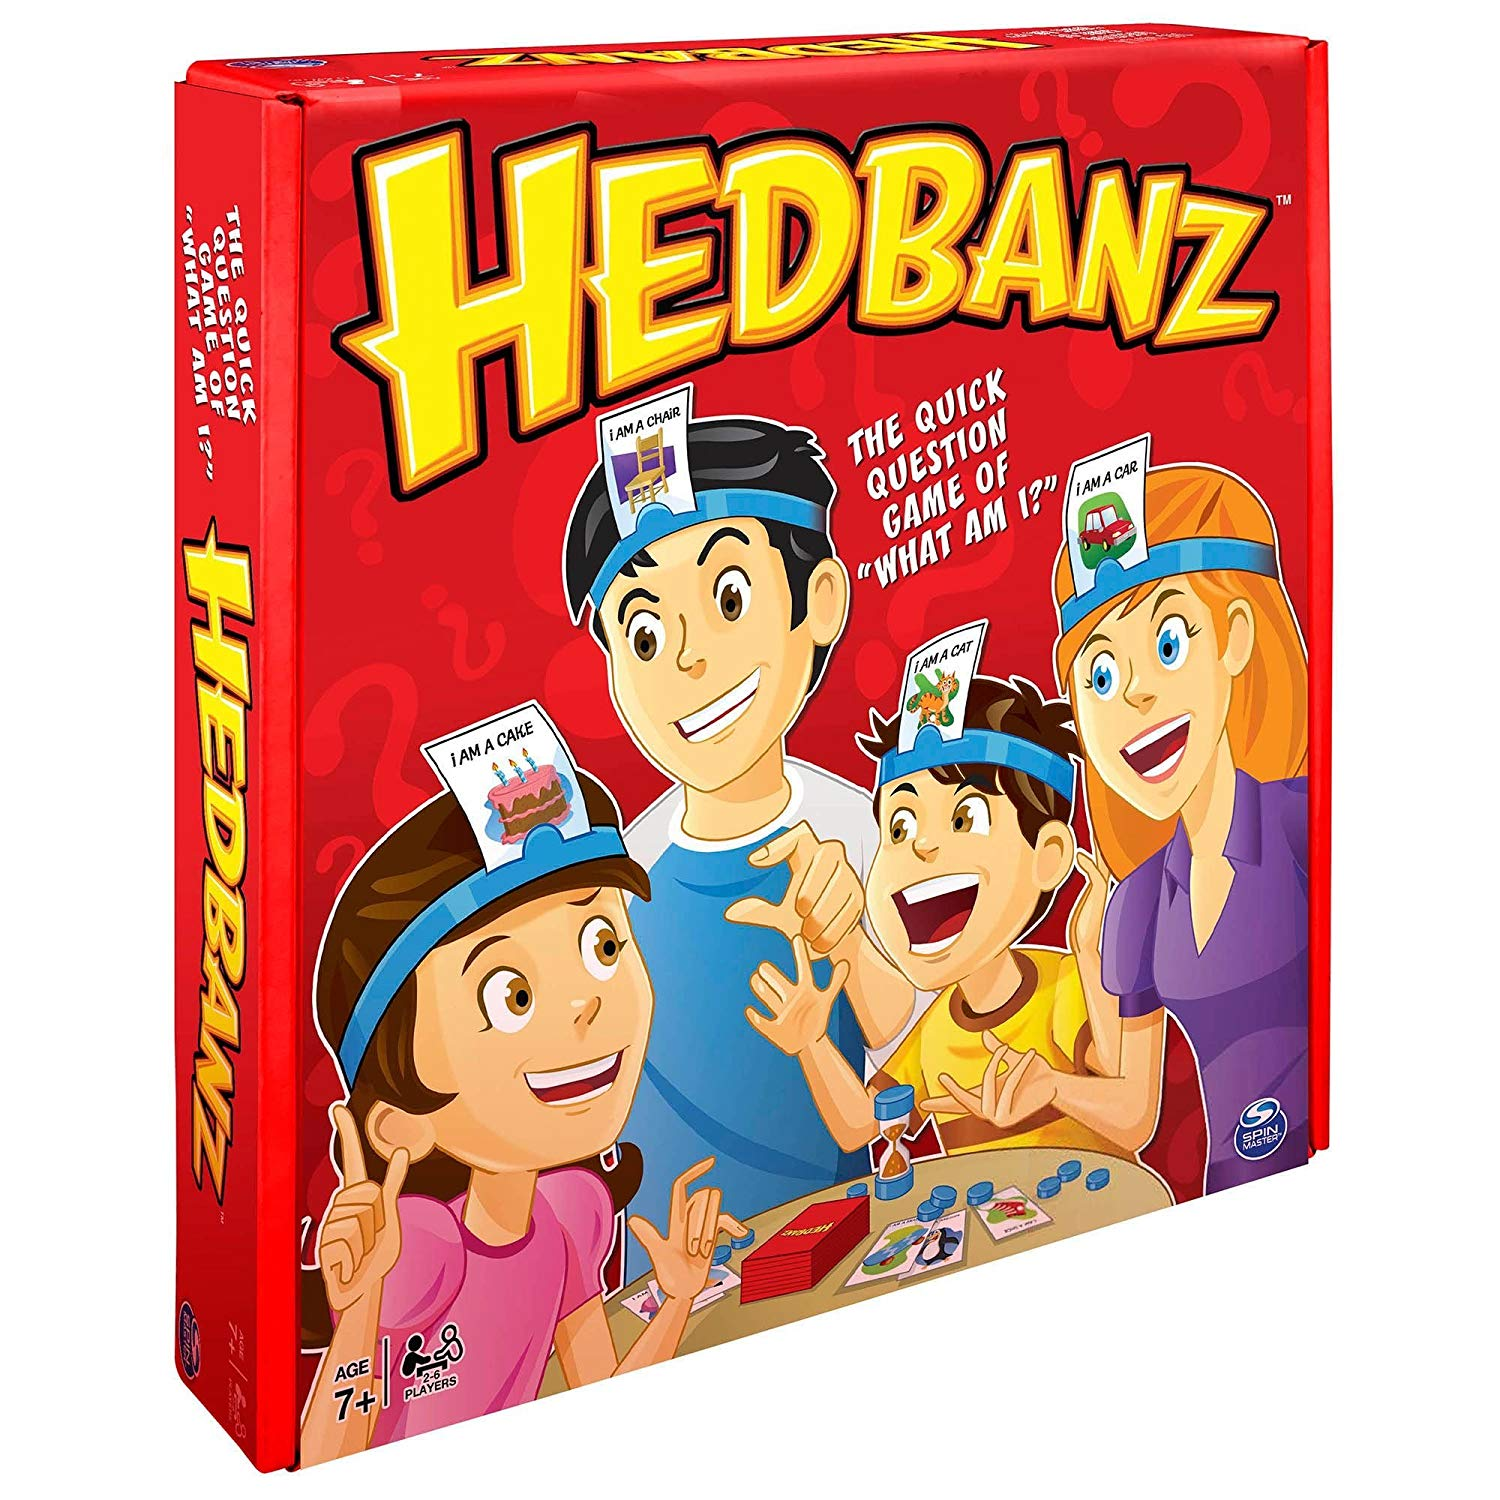 $9 69 HedBanz Family Guessing Game at Amazon (regularly $20) | Daily